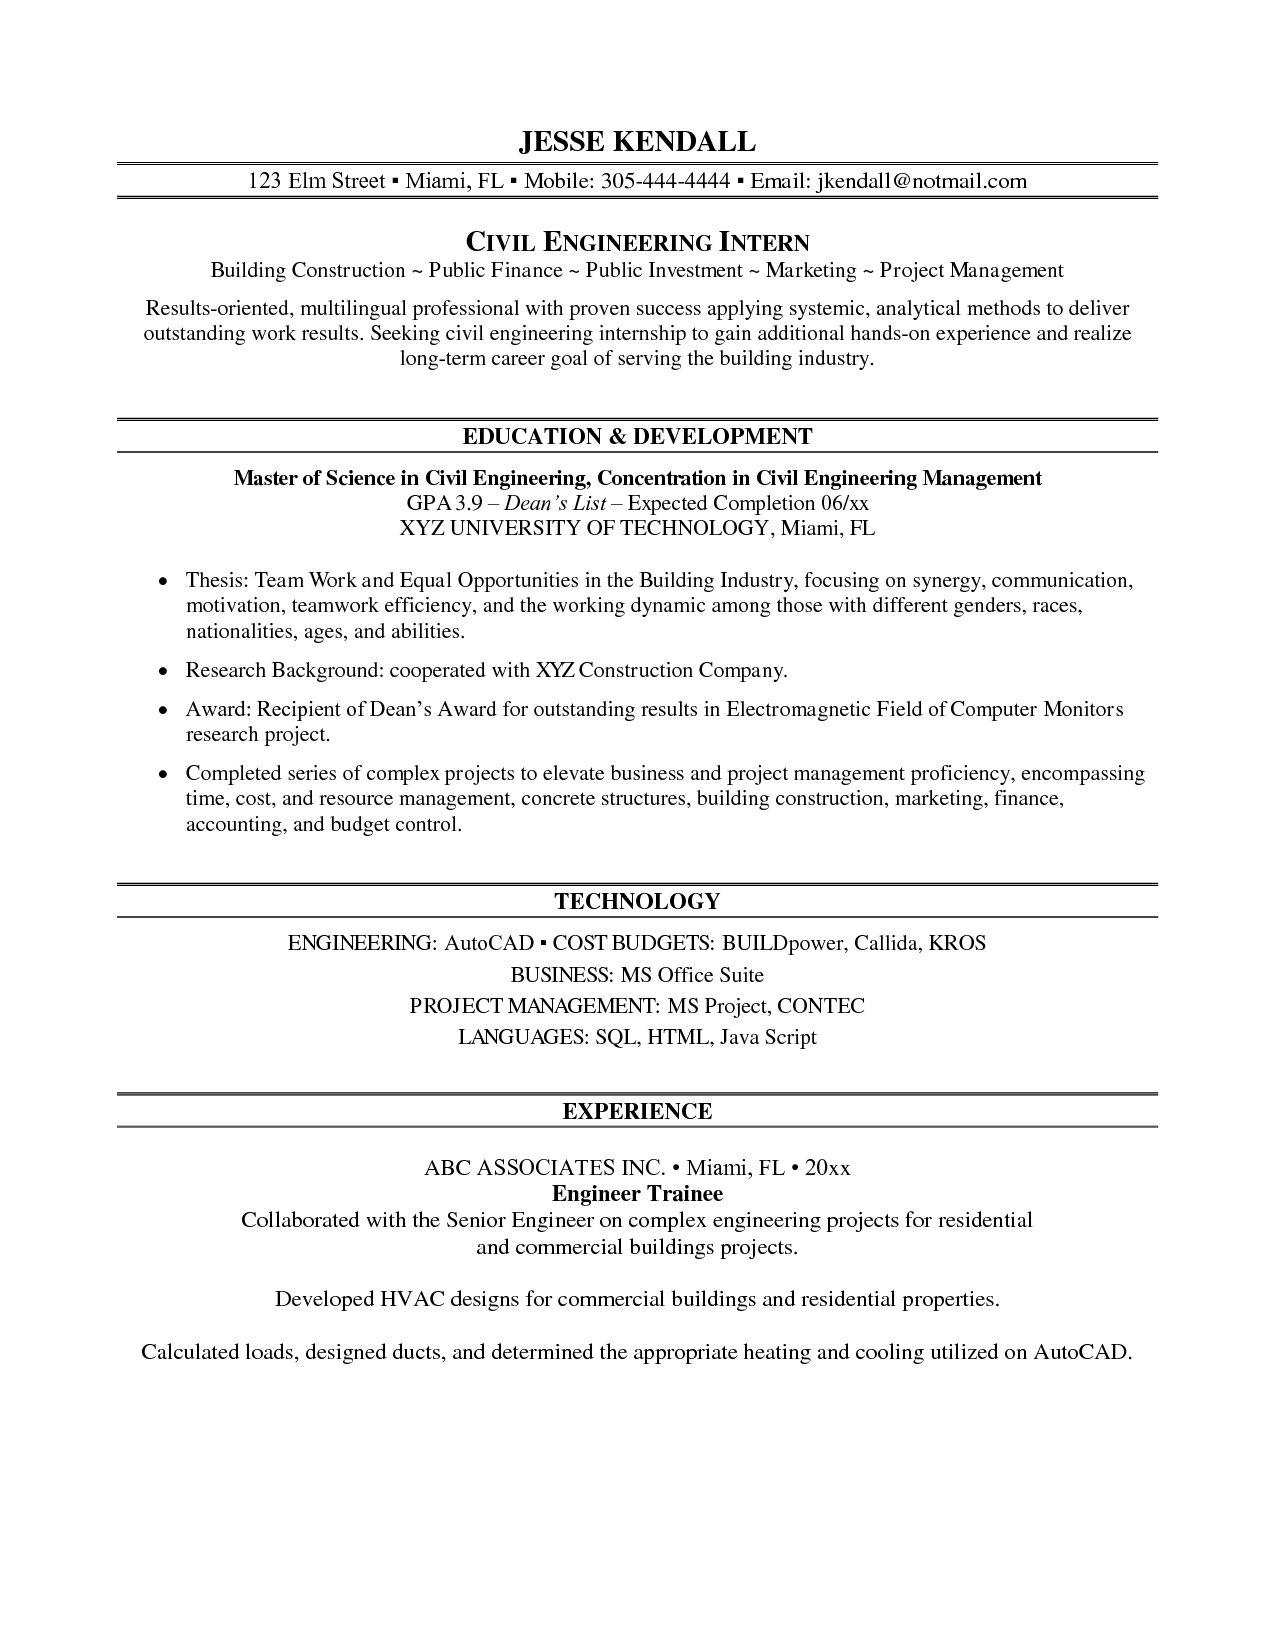 Internship On Resume Best Template Collection http//www